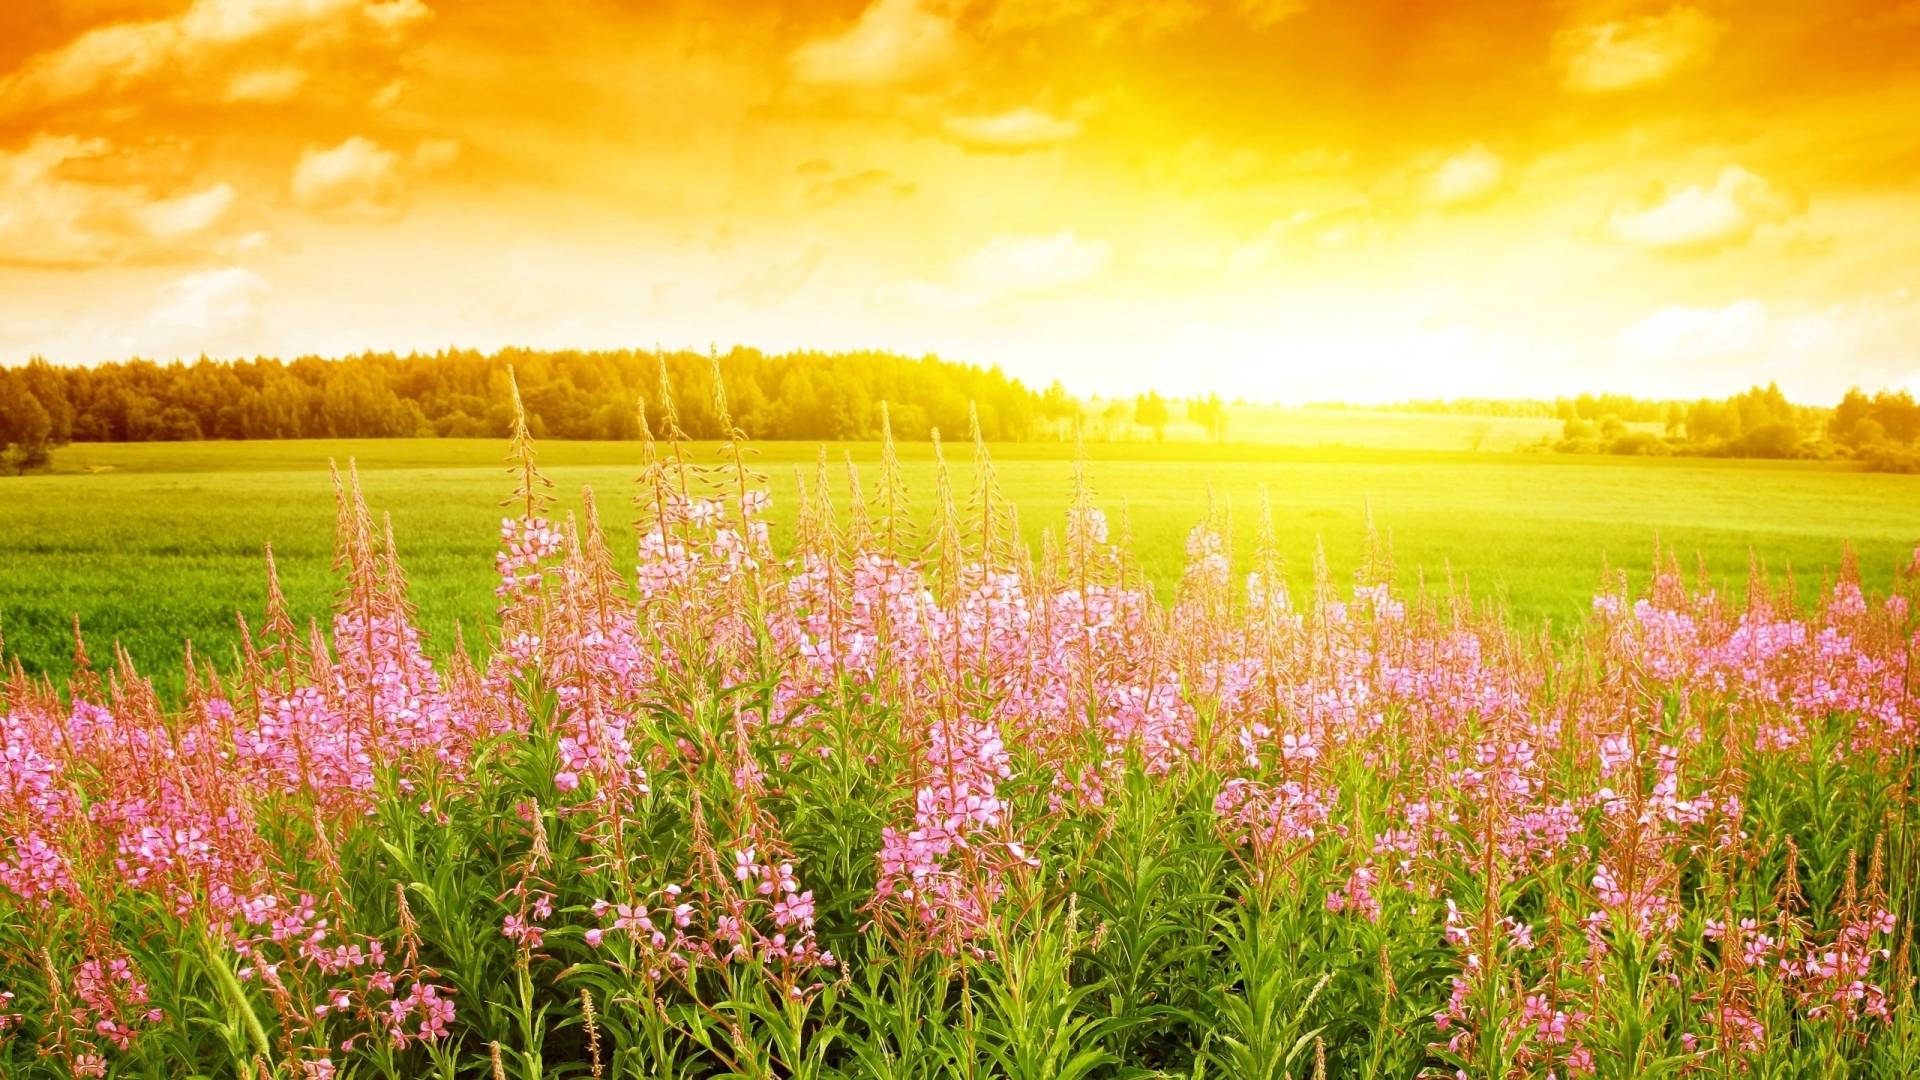 Summer Flowers Wallpapers | HD Wallpapers Early